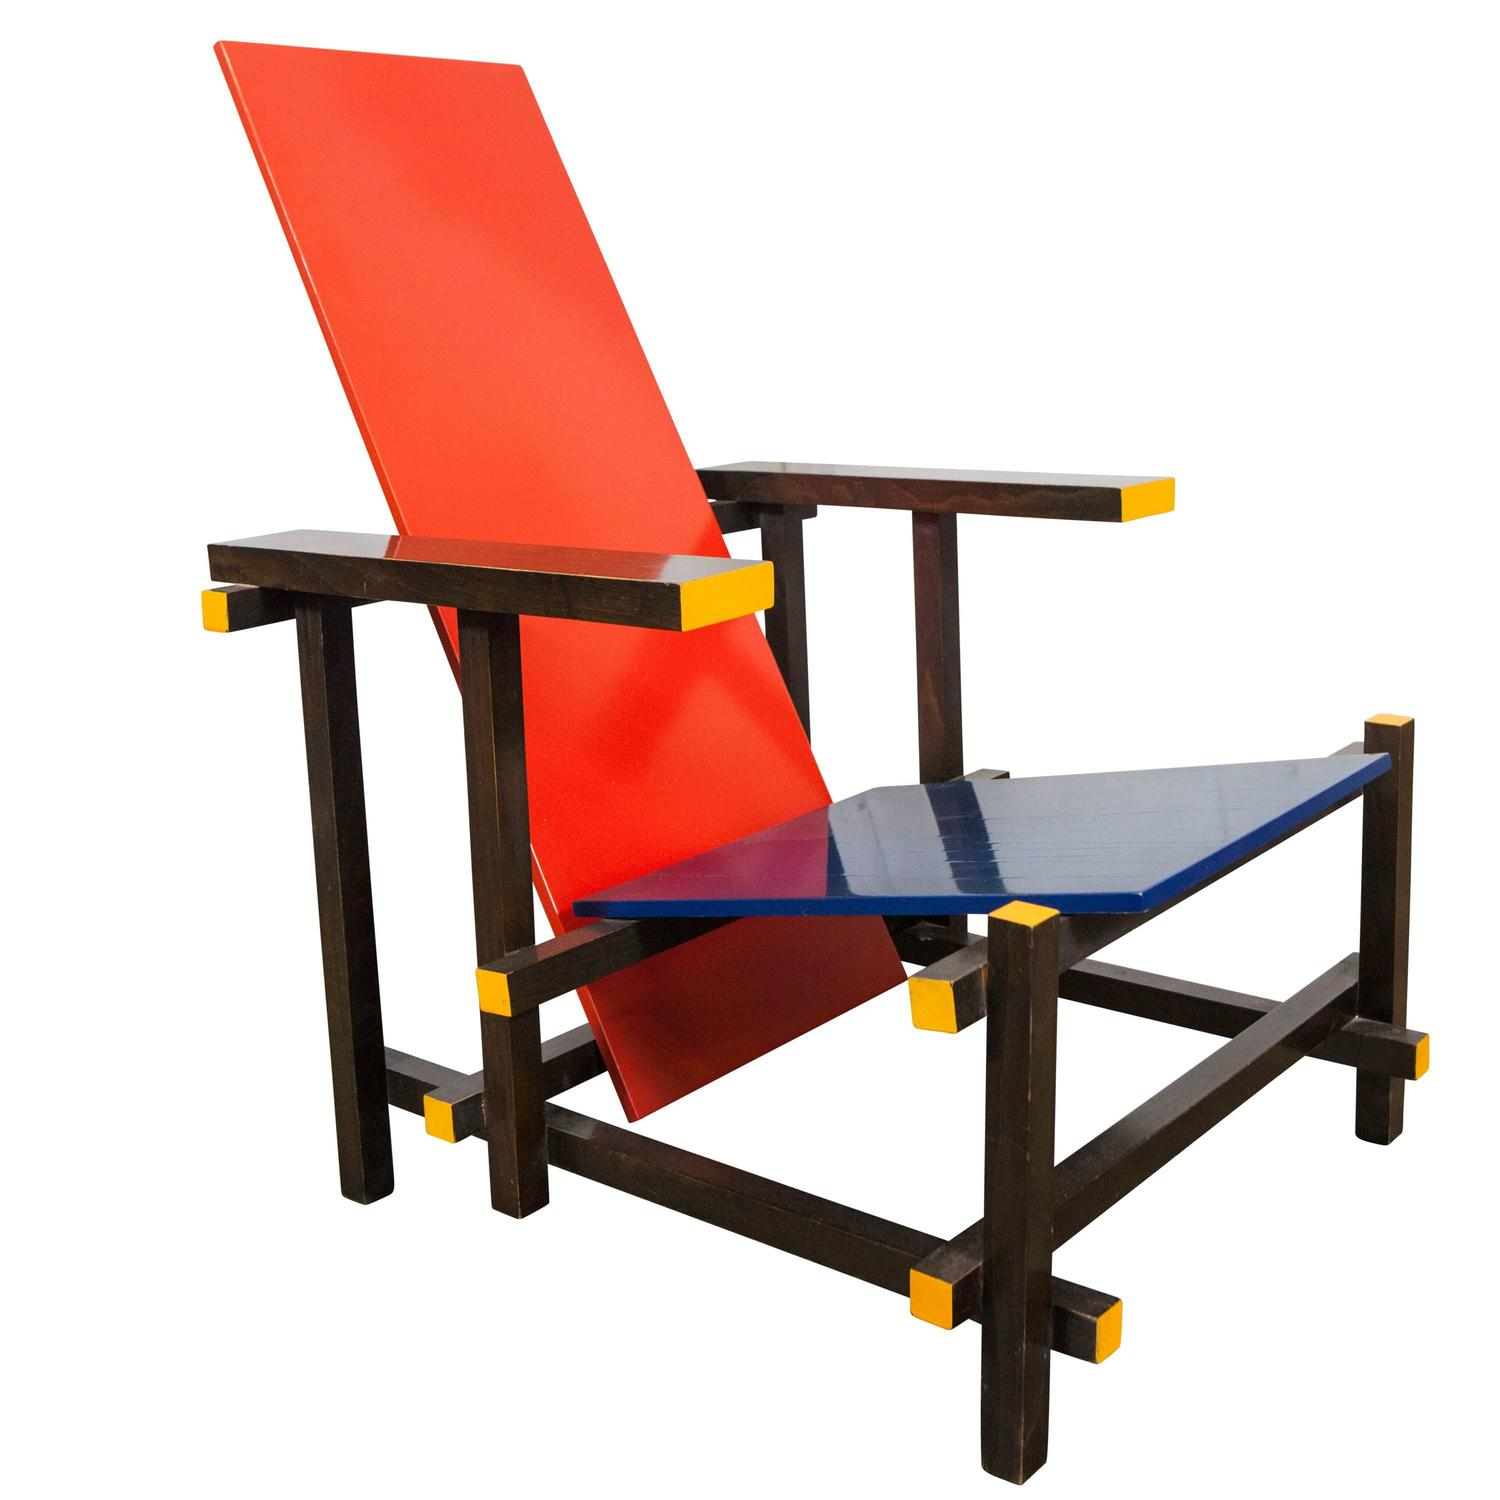 Gerrit Rietveld Red Blue Chair by Cassina, Italy, 1980 For ...Gerrit Rietveld Chair